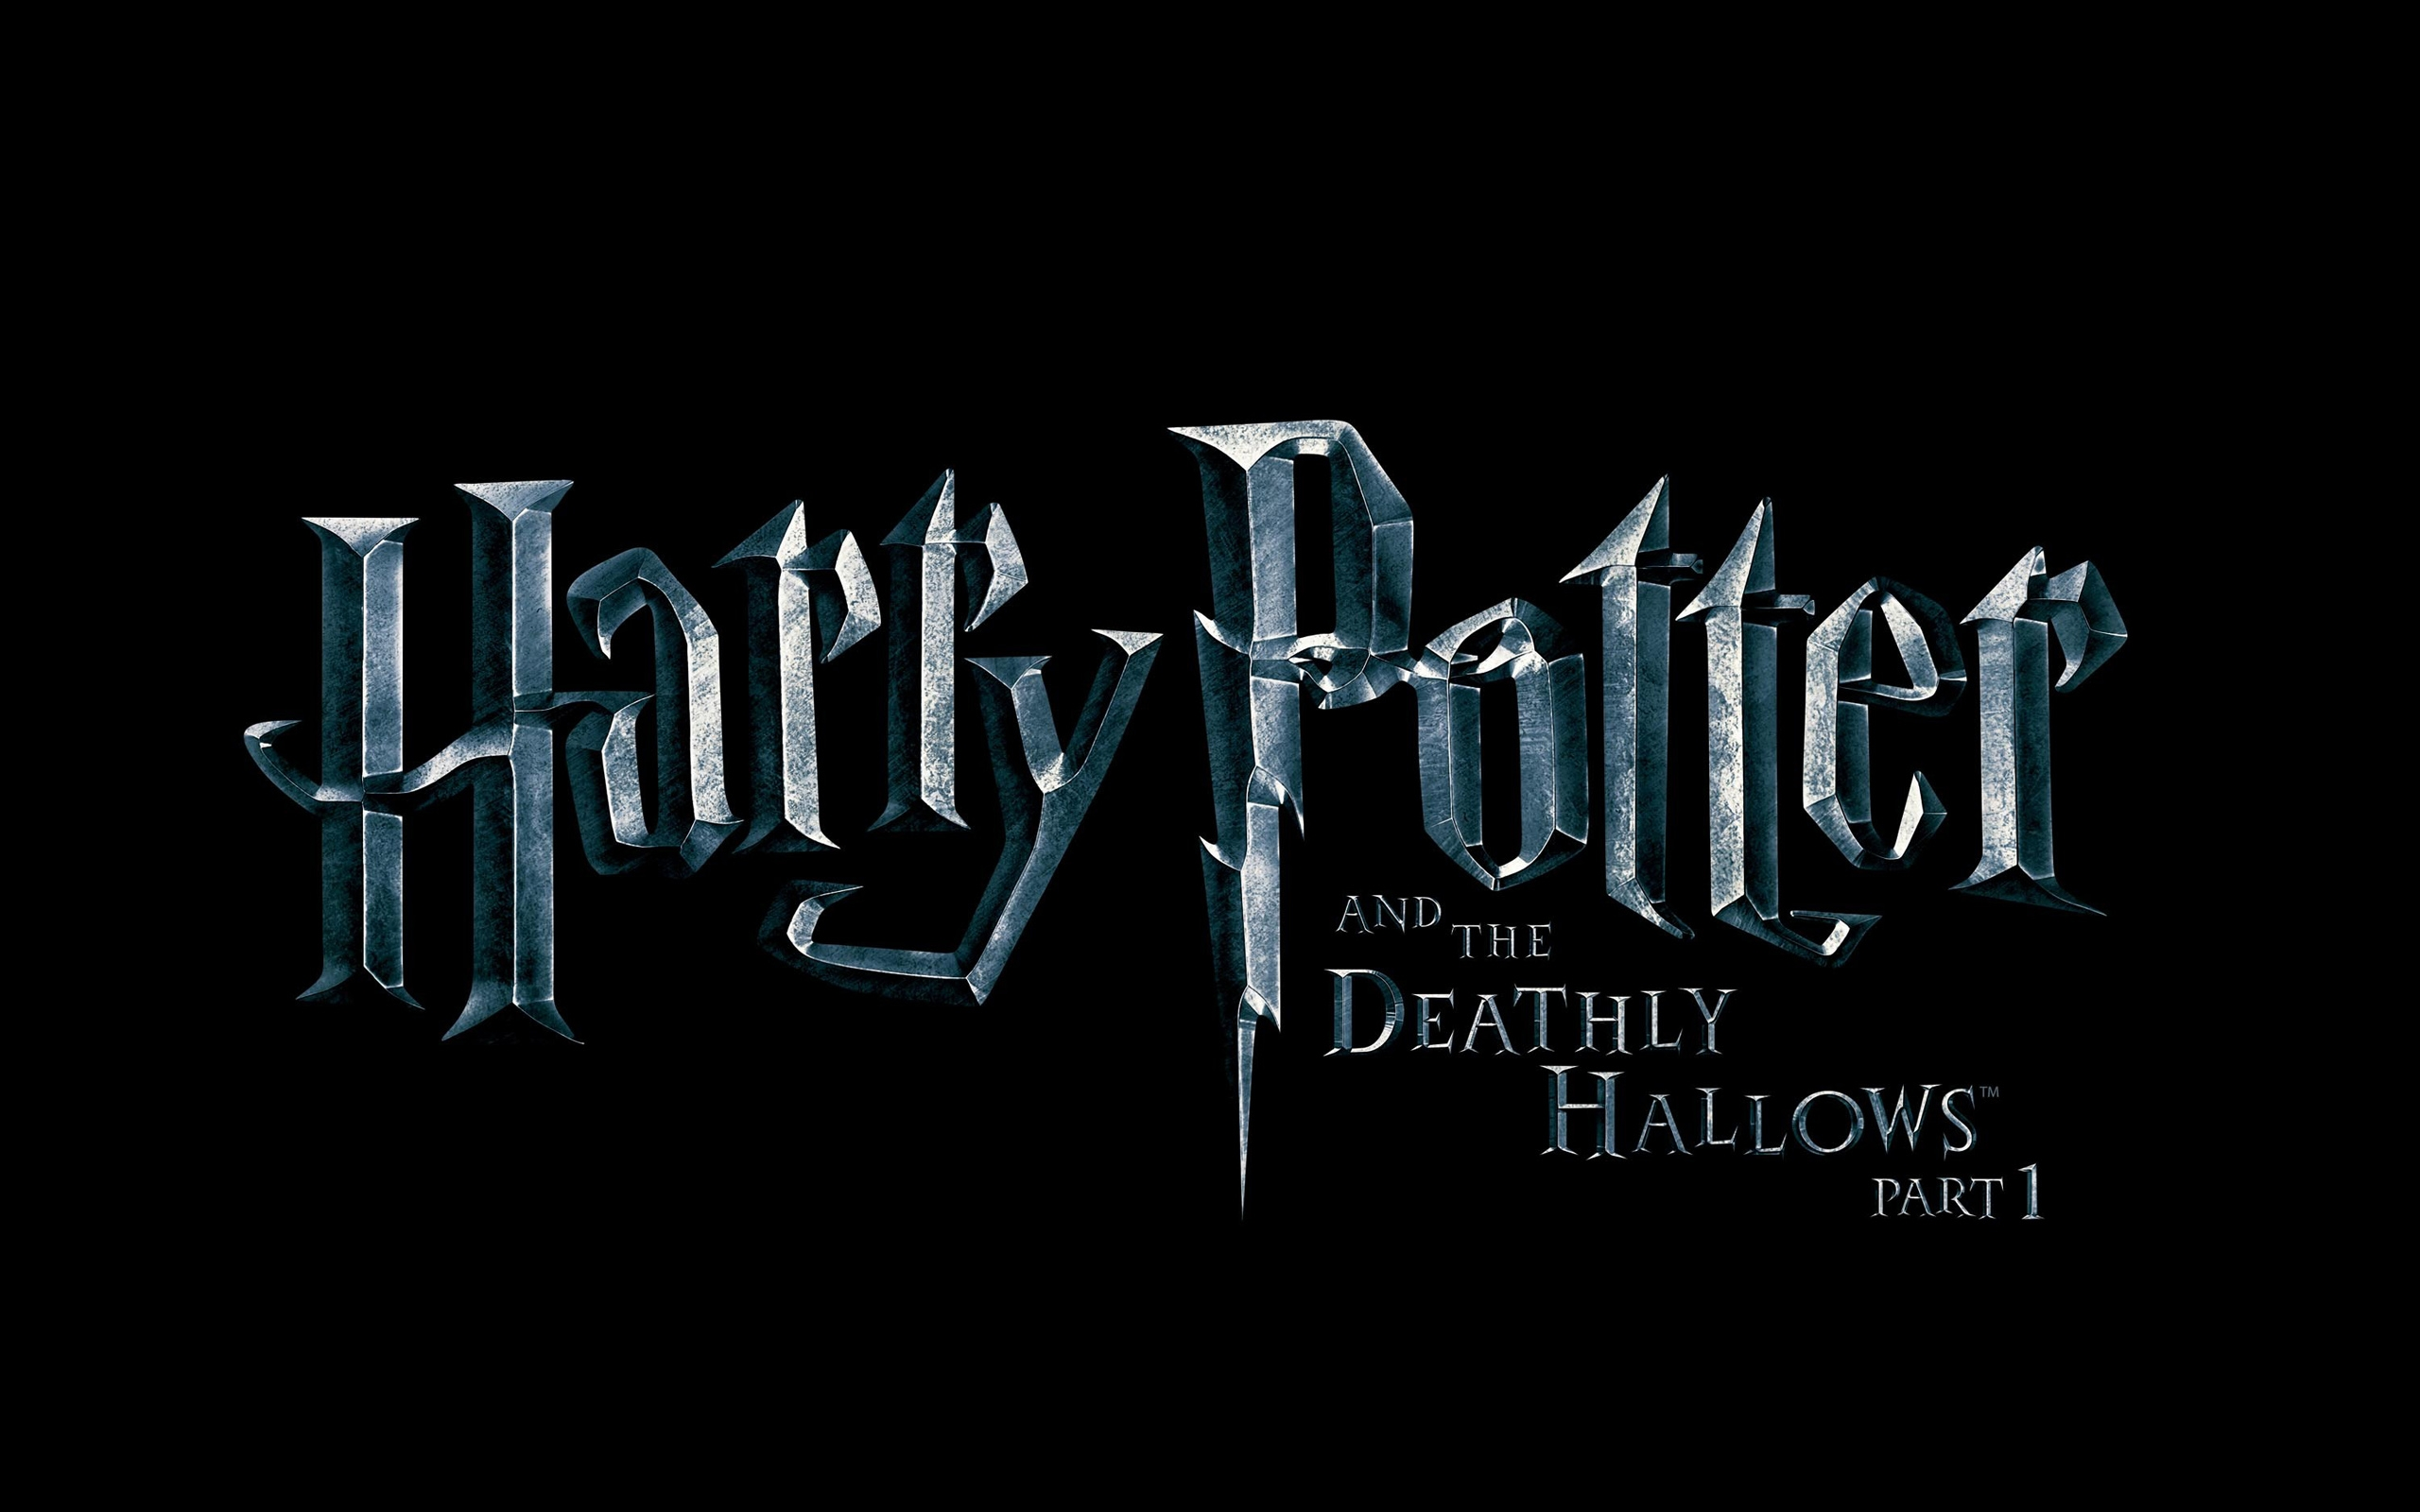 Harry Potter Deathly Hallows Wallpapers Harry Potter Deathly